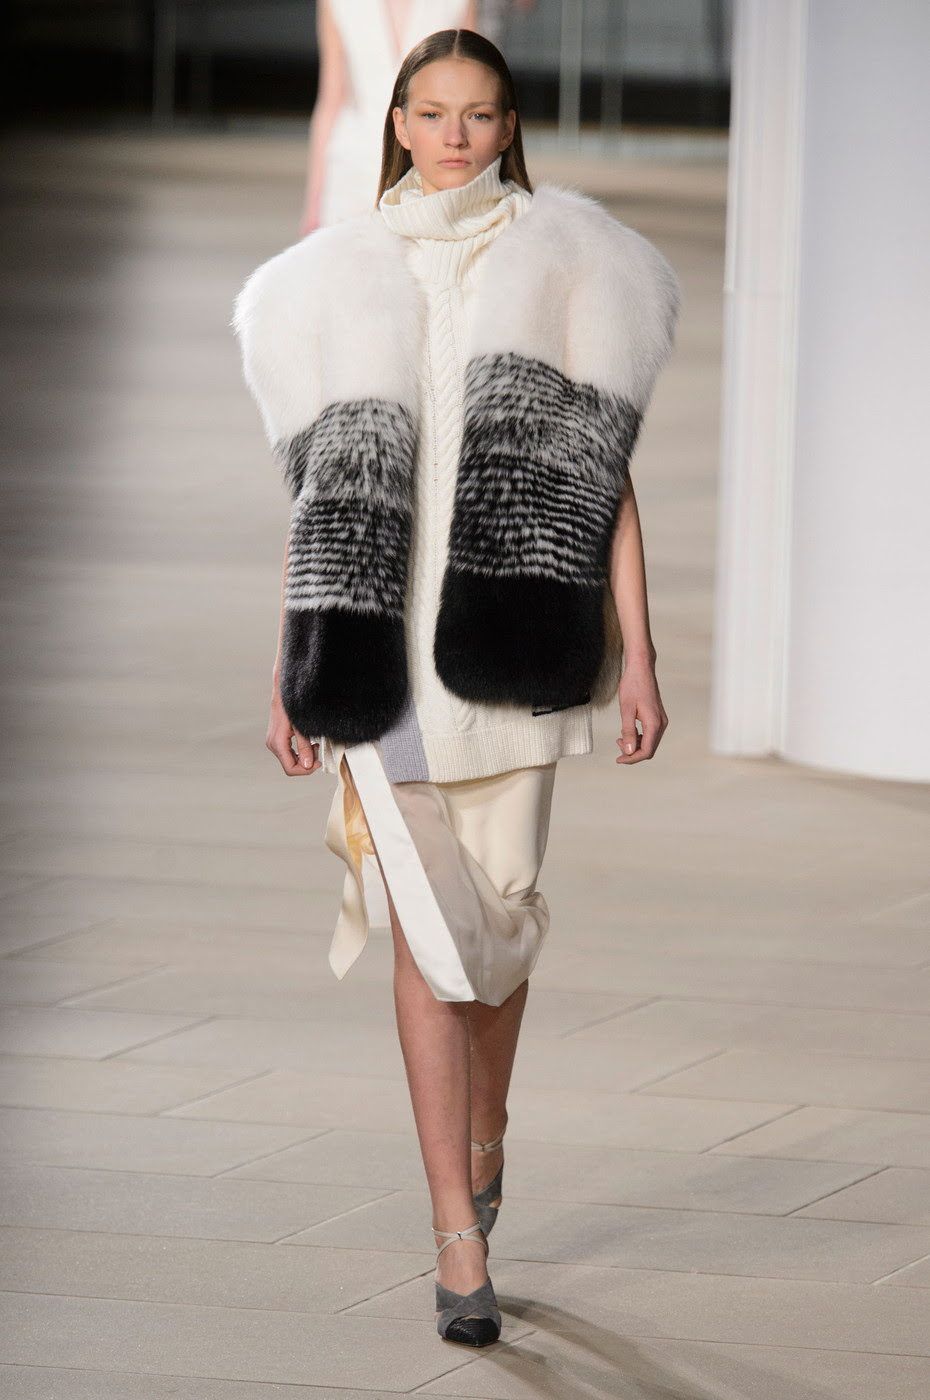 Fur Stoles are the Hottest Accessory Right Now